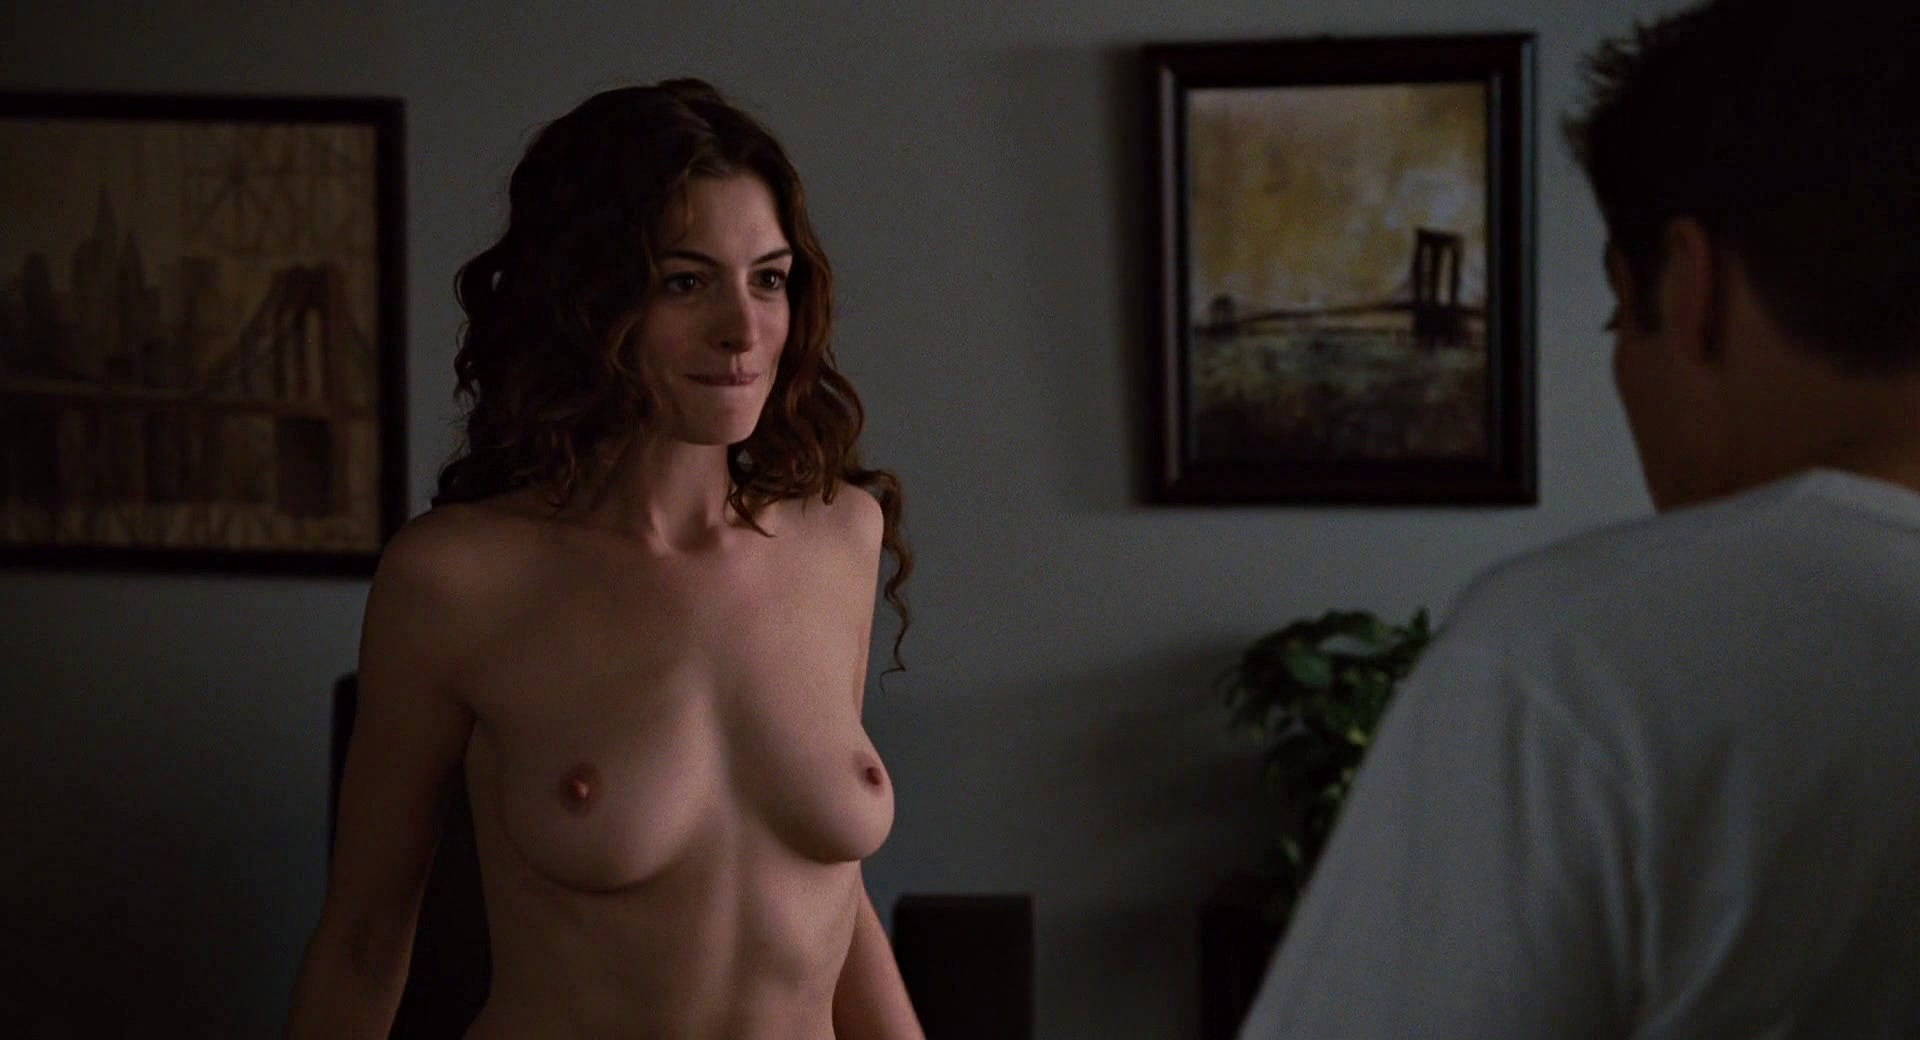 Anne Hathaway pussy show